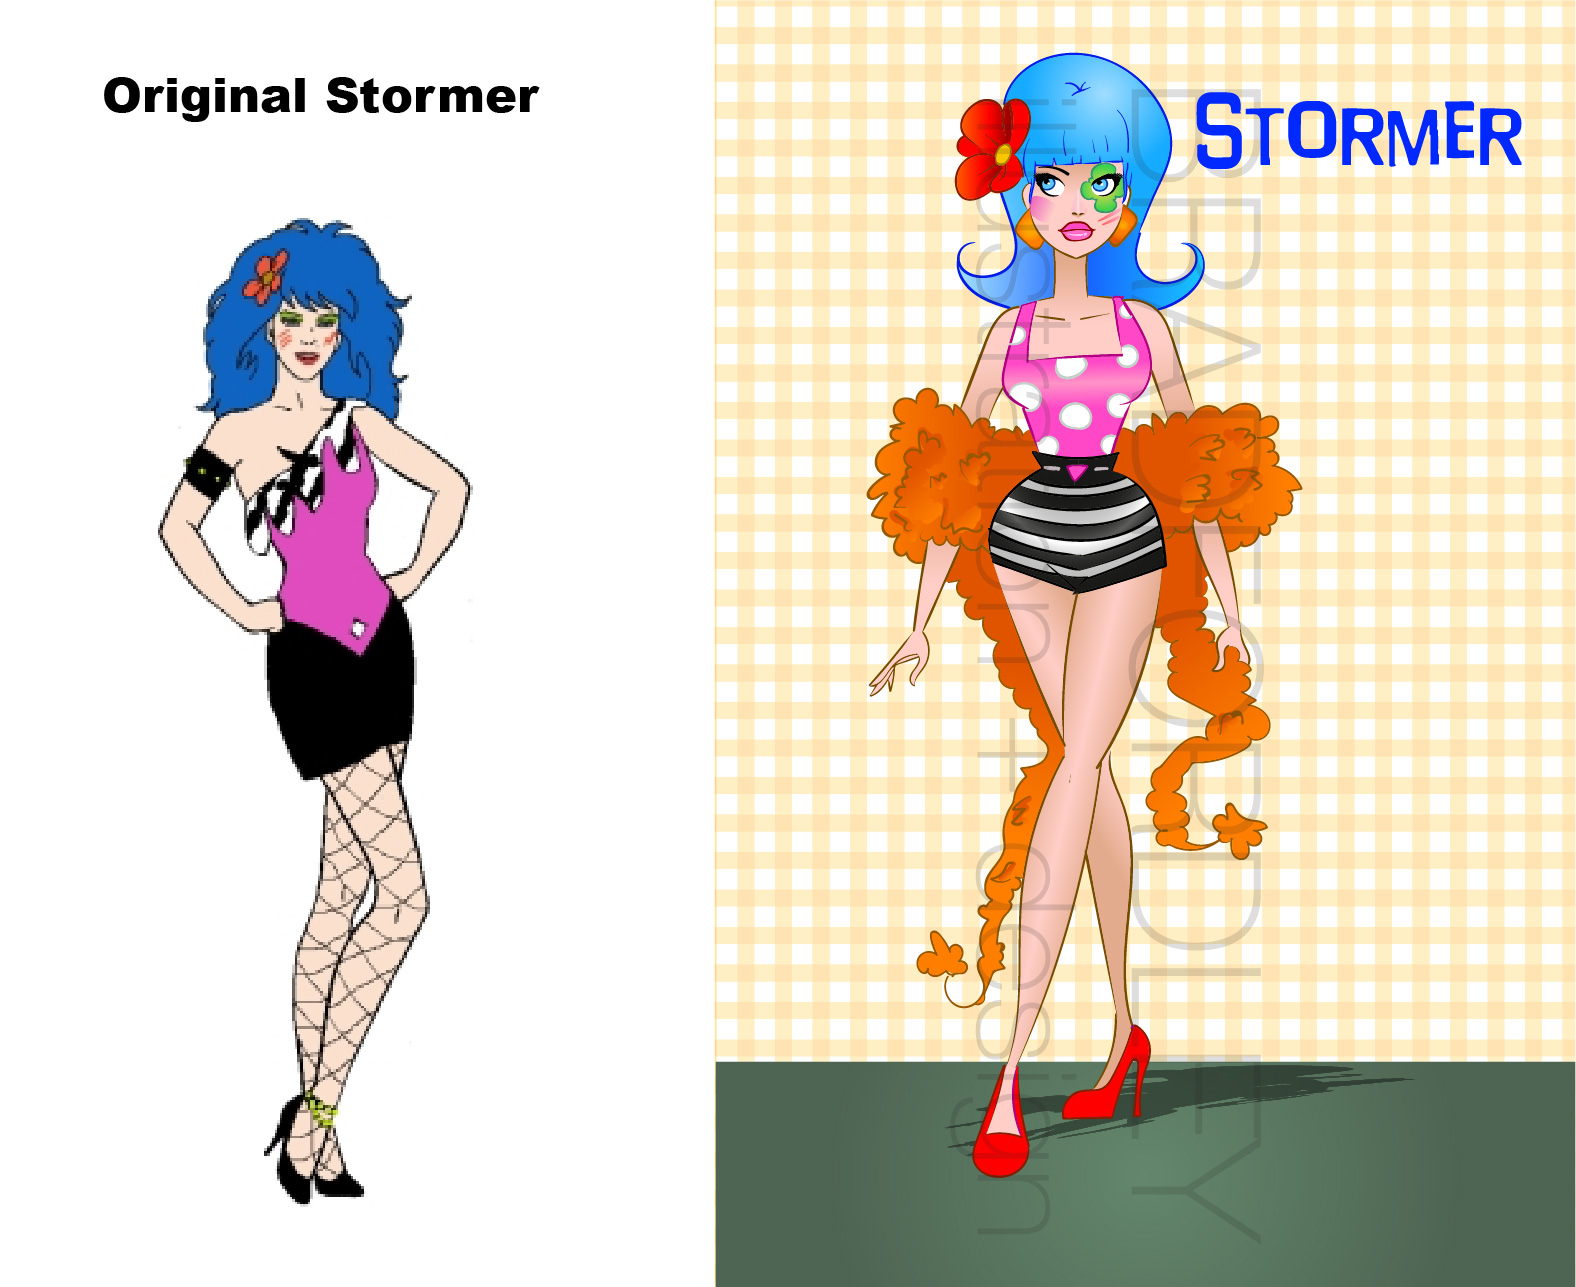 """Now we have one of my FAVORITE Jem characters, Mary Phillips, also known as Stormer! The flower in her hair reminded me of a 60s beach party, so I went a little off script with her and kept it in the 60s but married mod style with 60s beach fashion. And then I gave her a large orange boa, because I thought it went well, and she's giving us a very """"laugh in"""" era look with the flower over the eye. Get it Mary Phillips!! This was probably one of my favorites to create."""